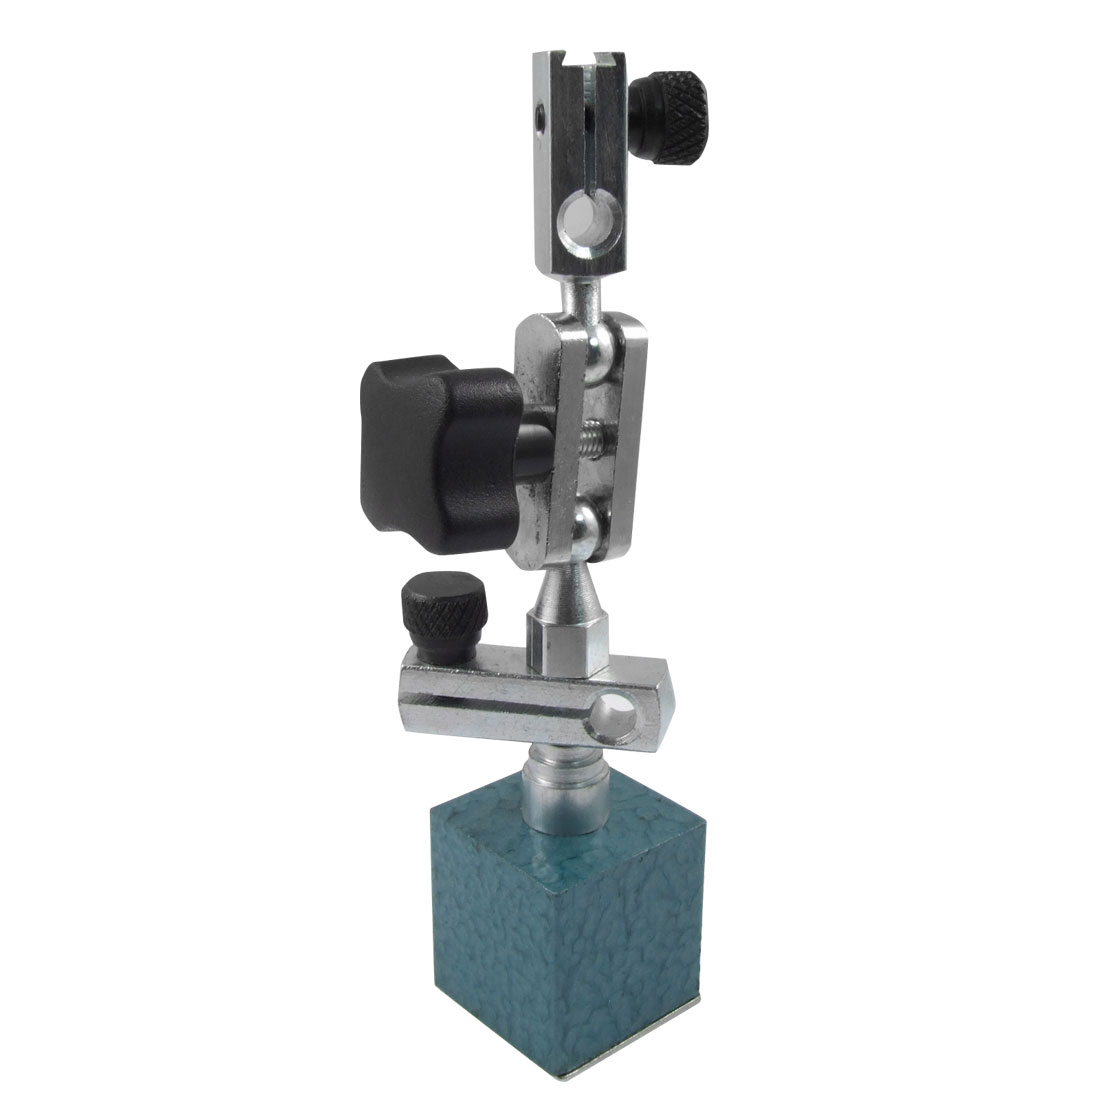 Unique Bargains Magnetic Base Stand Holder for Dial Test Indicator Gauge at Sears.com